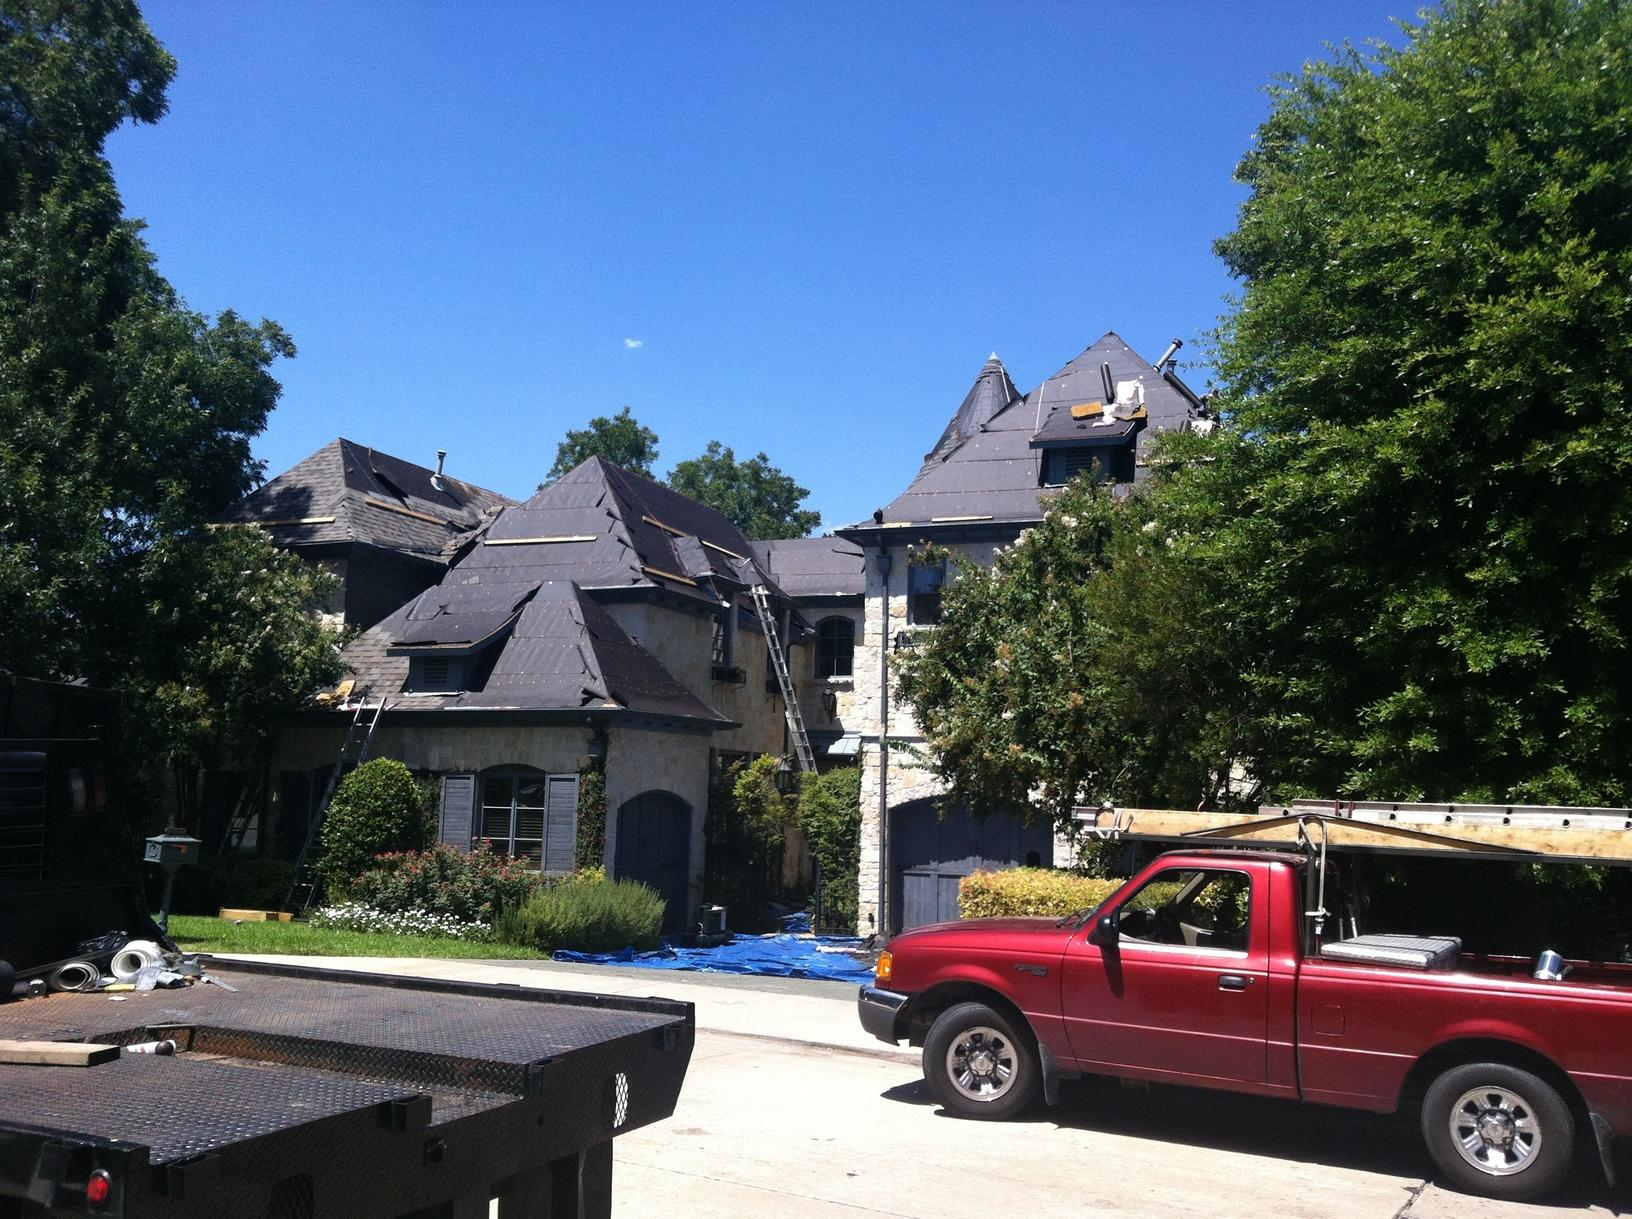 Owens Corning Roof Replacement in Dallas, TX - Before Photo